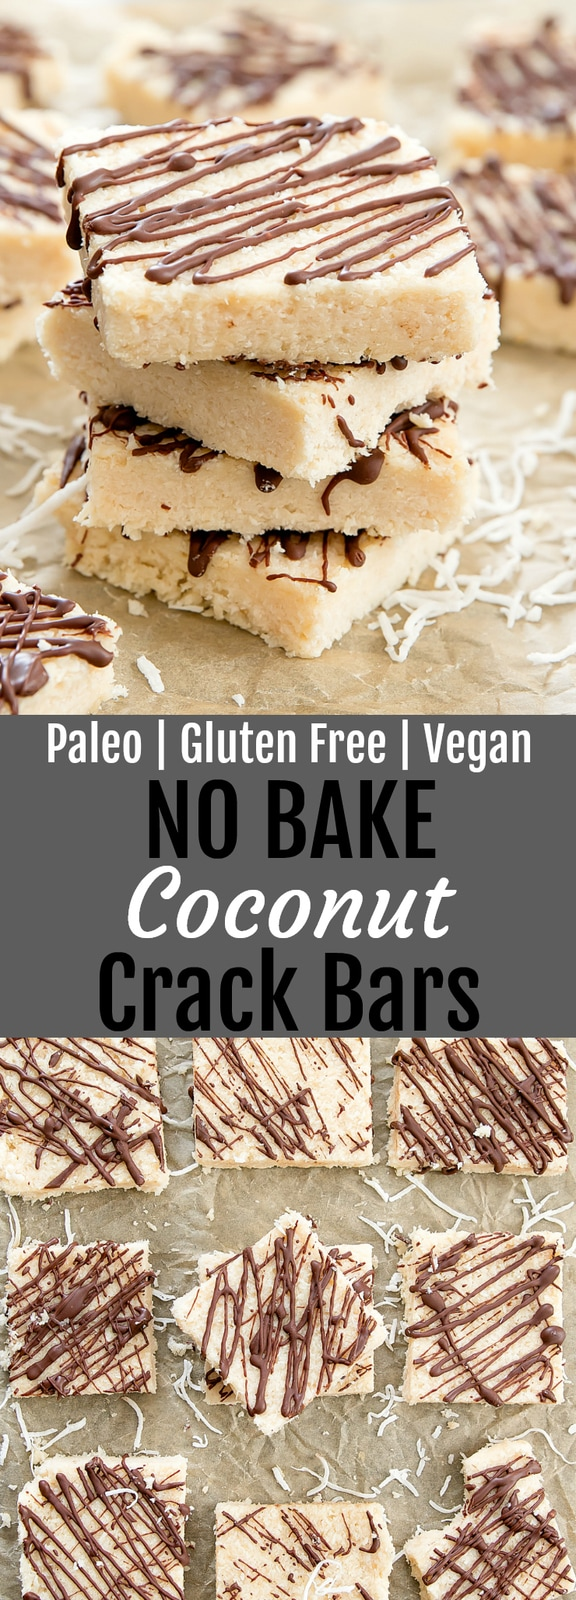 No Bake Coconut Crack Bars. Just 4 ingredients and they are also paleo, gluten free and vegan. These bars taste like coconut candy bar filling.